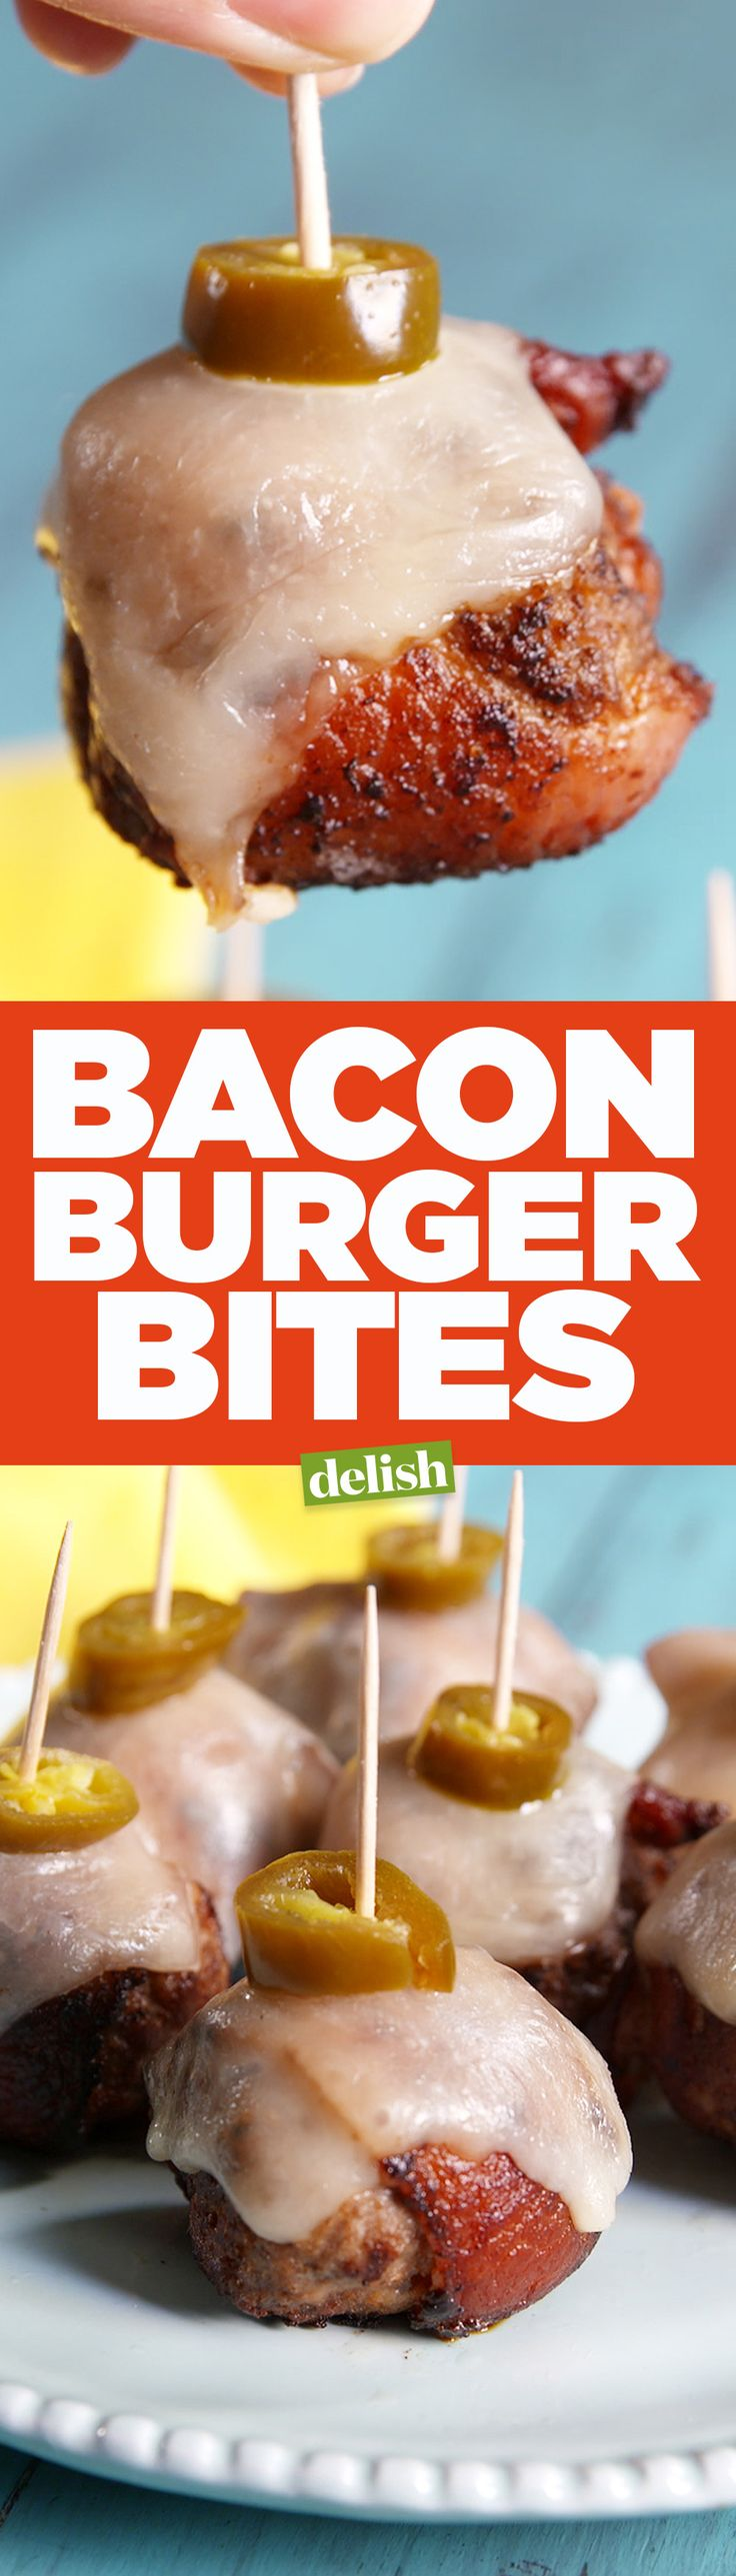 Bacon Burger Bites are the low-carb game day app your party desperately needs. Get the recipe from Delish.com. (Baking Dinner Bbq Sauces)